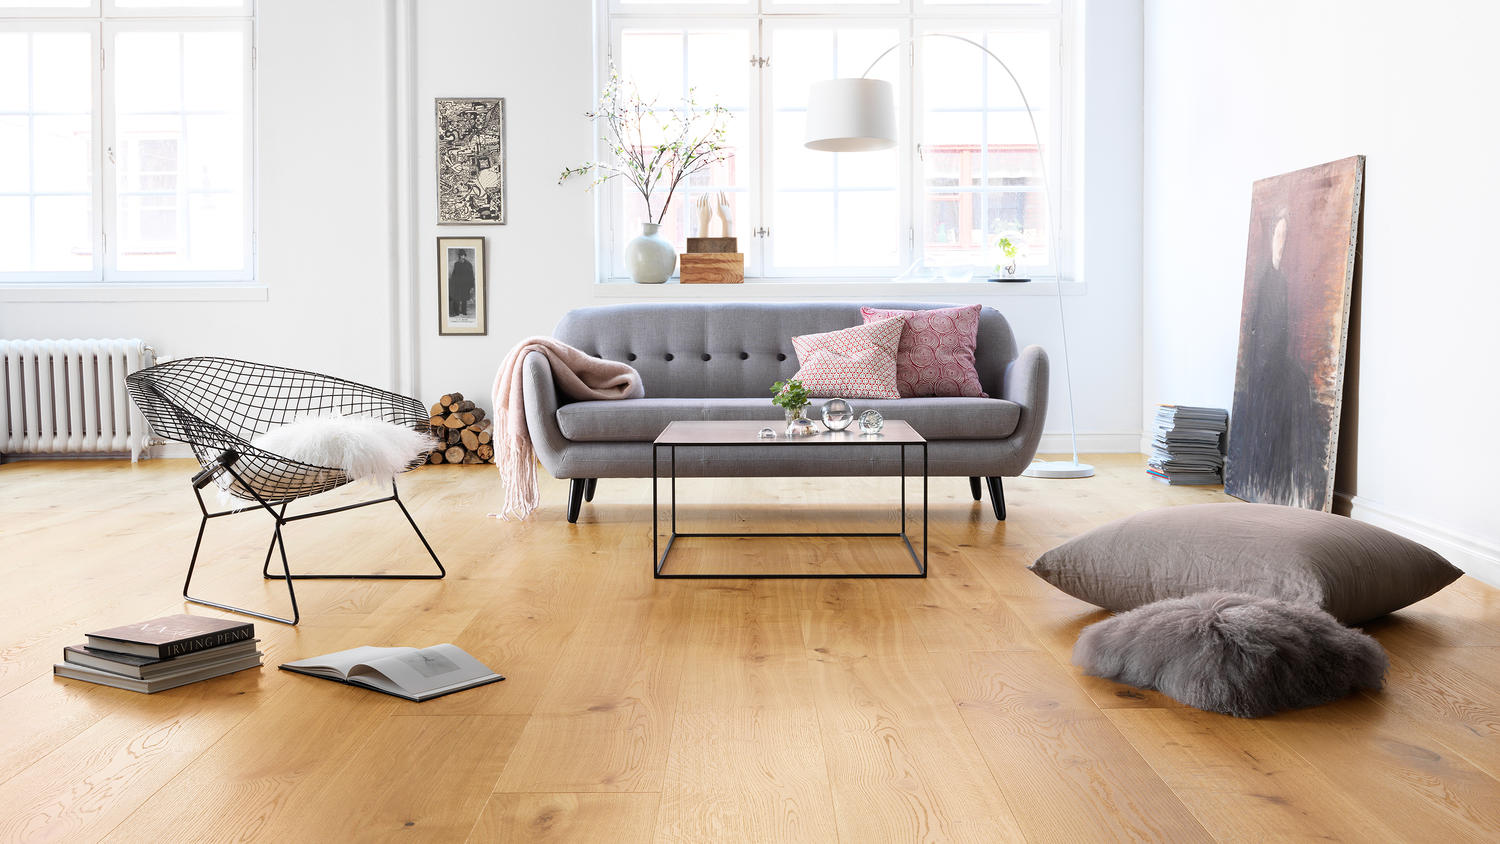 RECREATING SCANDINAVIAN STYLE IN YOUR HOME